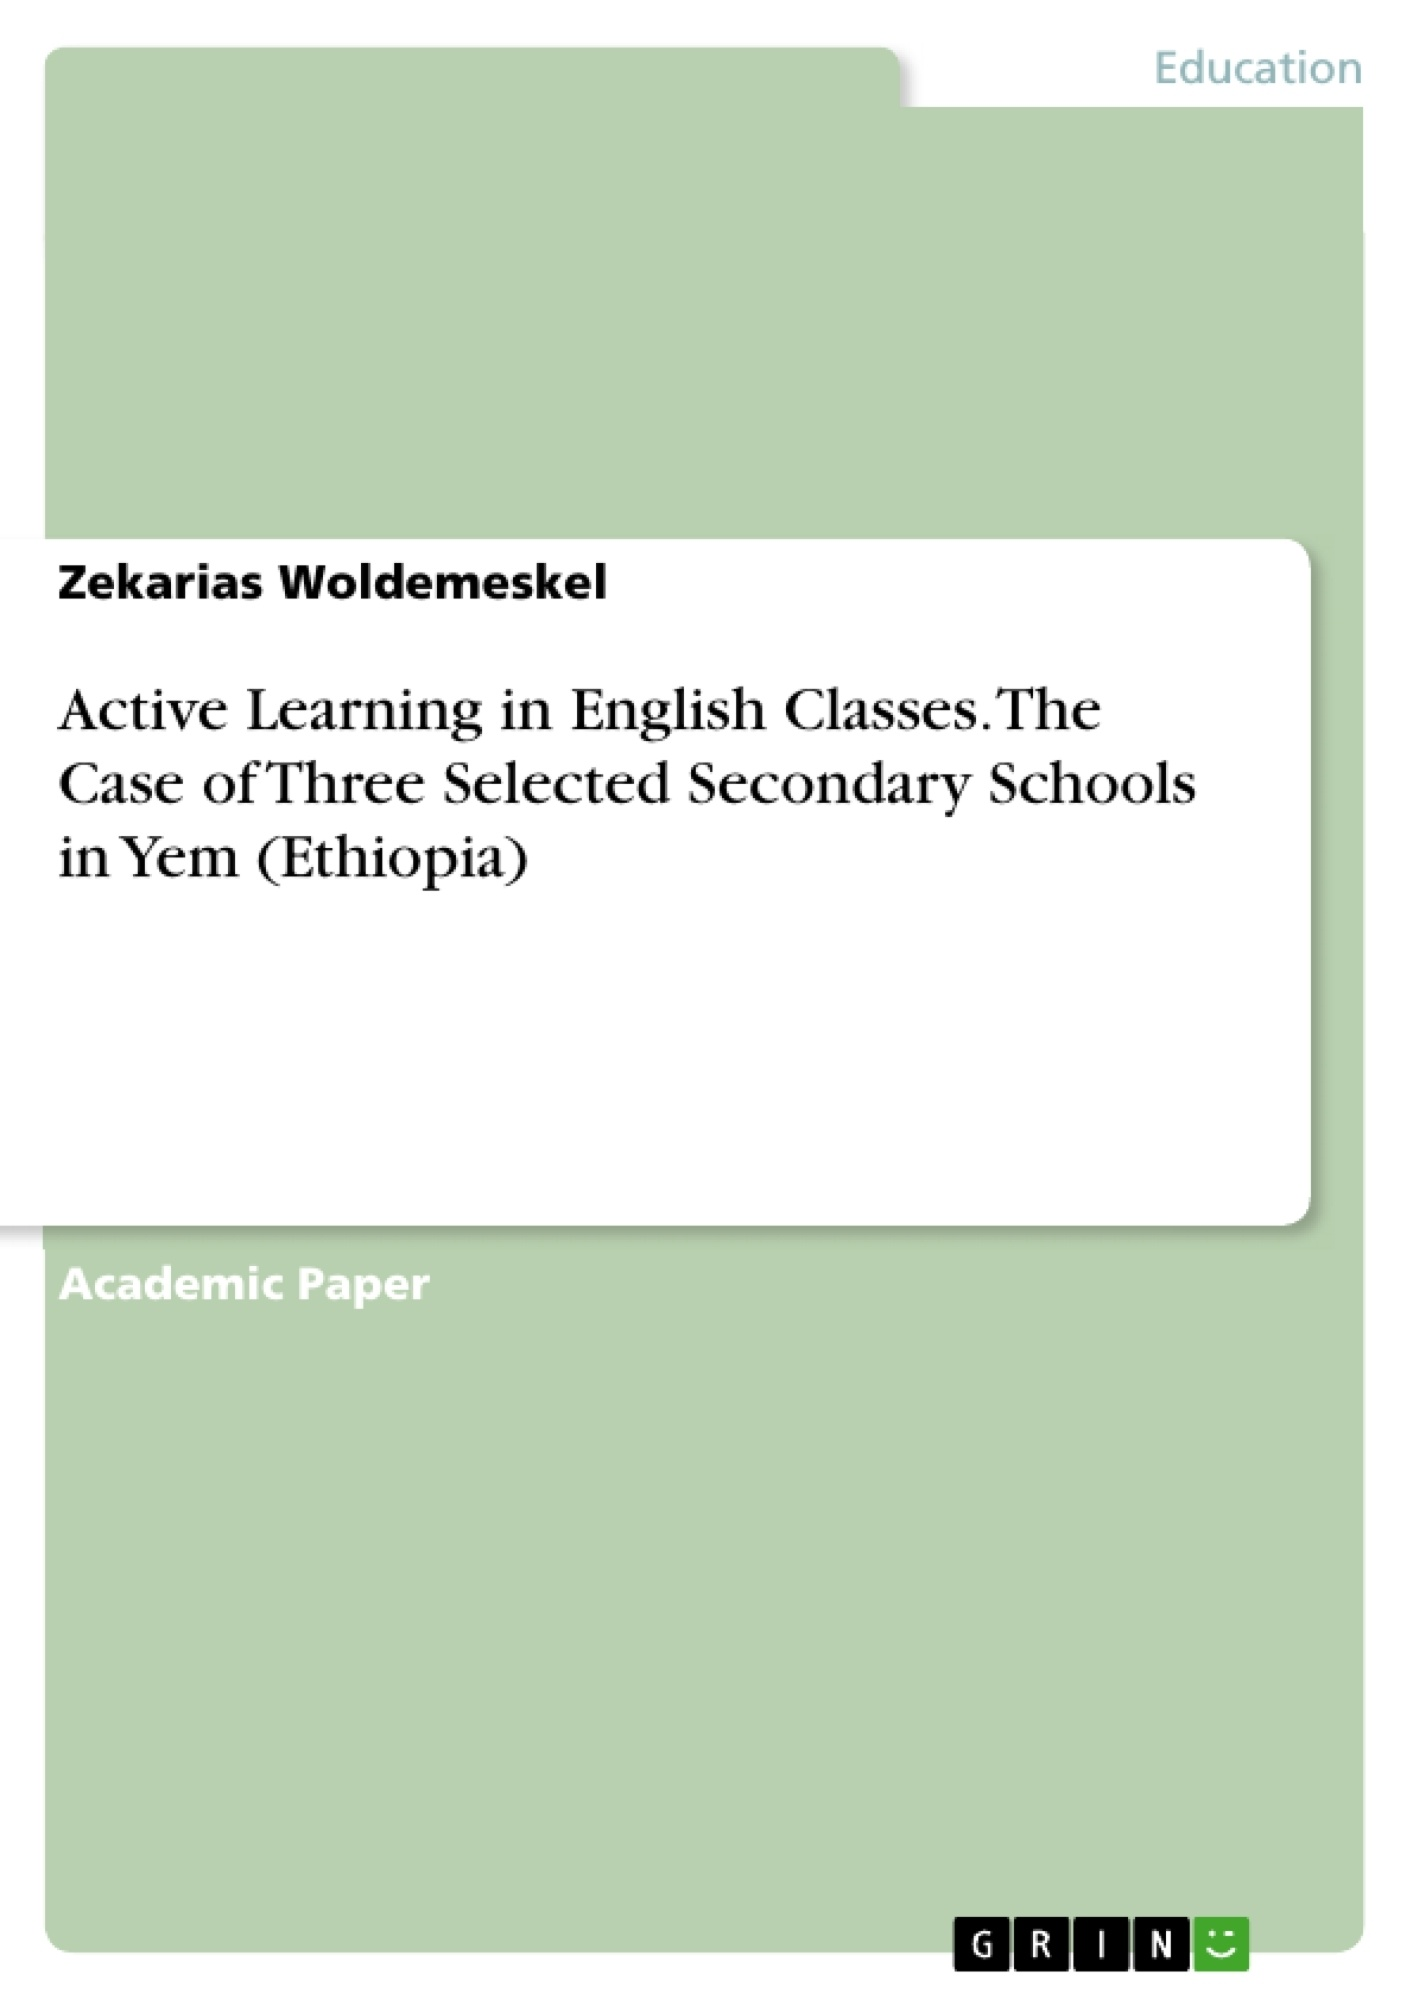 Title: Active Learning in English Classes. The Case of Three Selected Secondary Schools in Yem (Ethiopia)